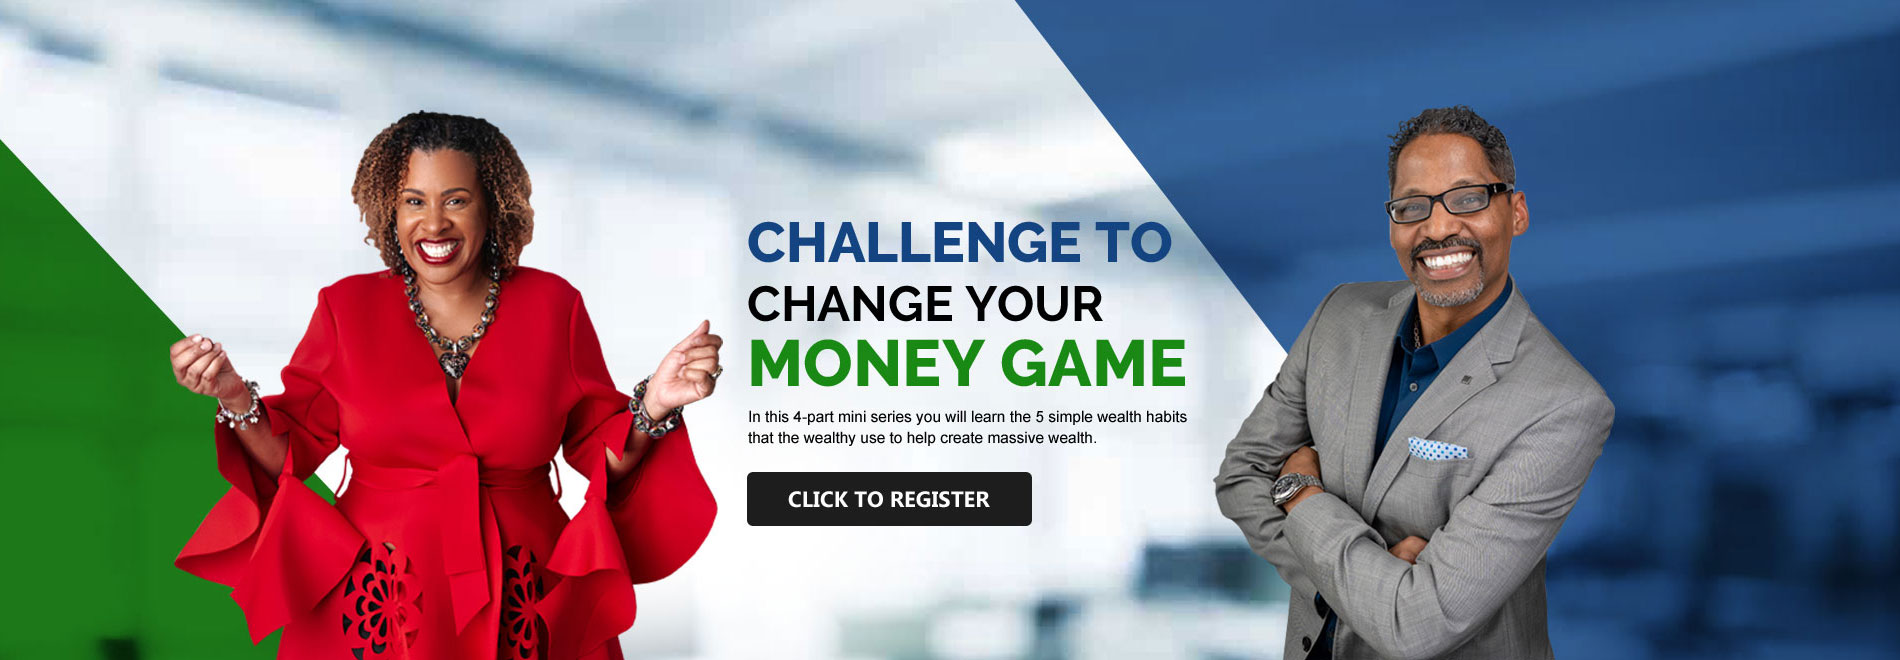 Challenge to change your money game